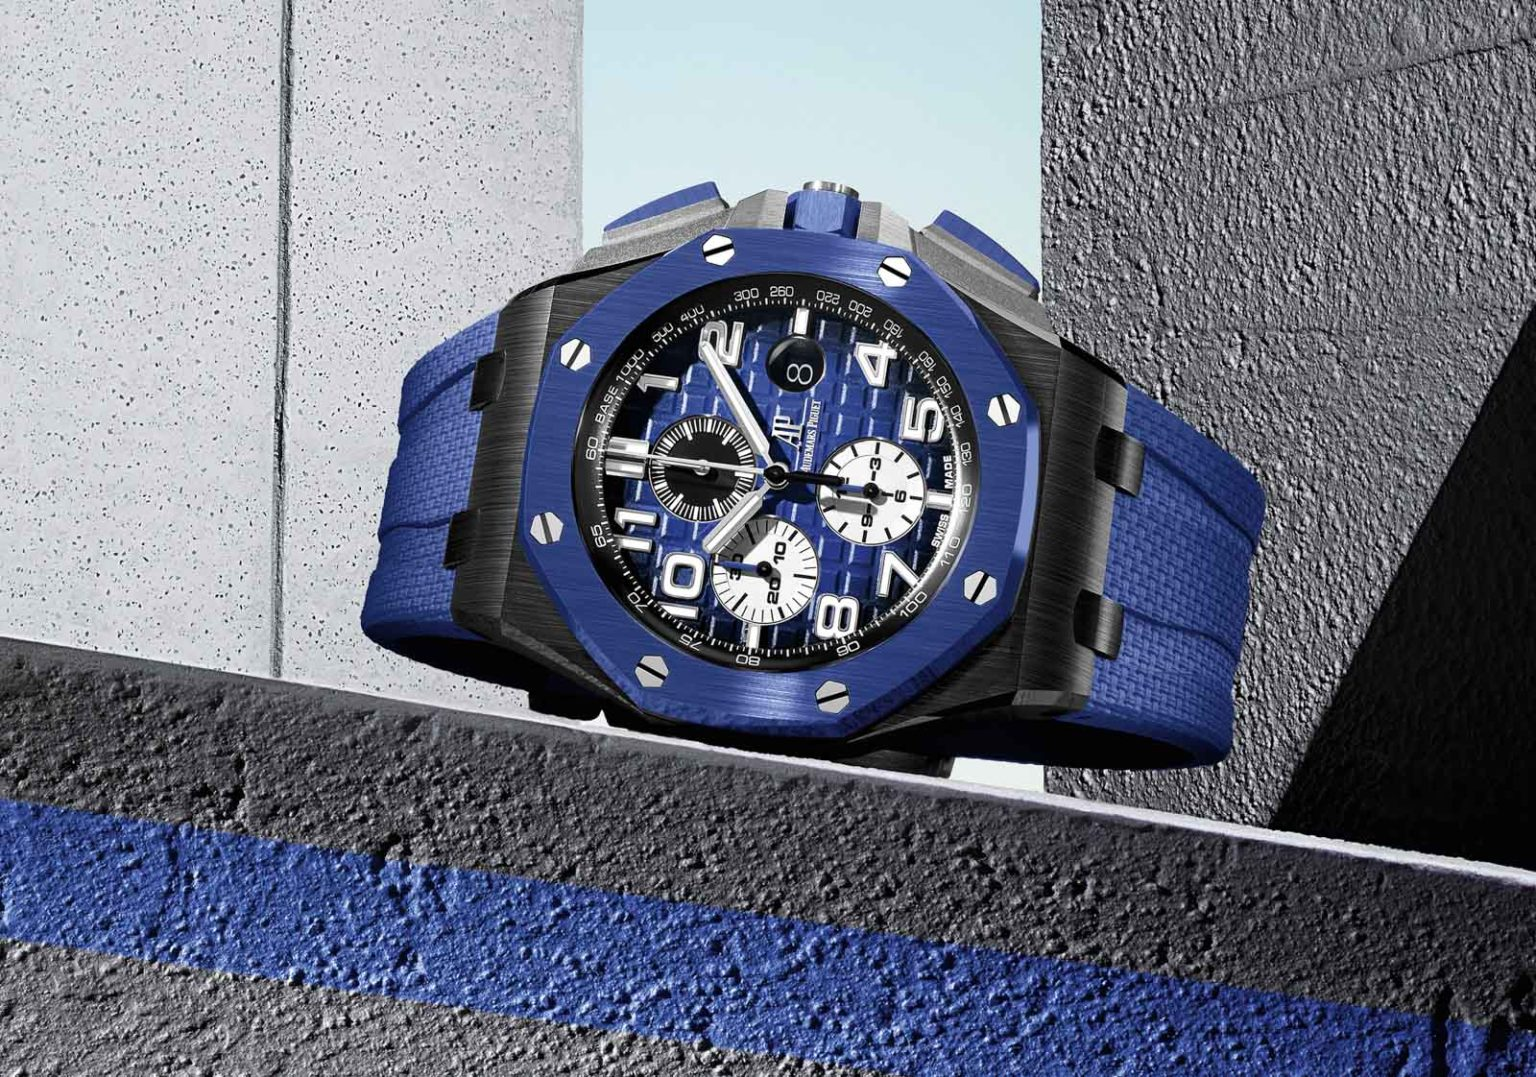 Audemars Piguet new 2020 Royal Oak Offshore Selfwinding Chronograph